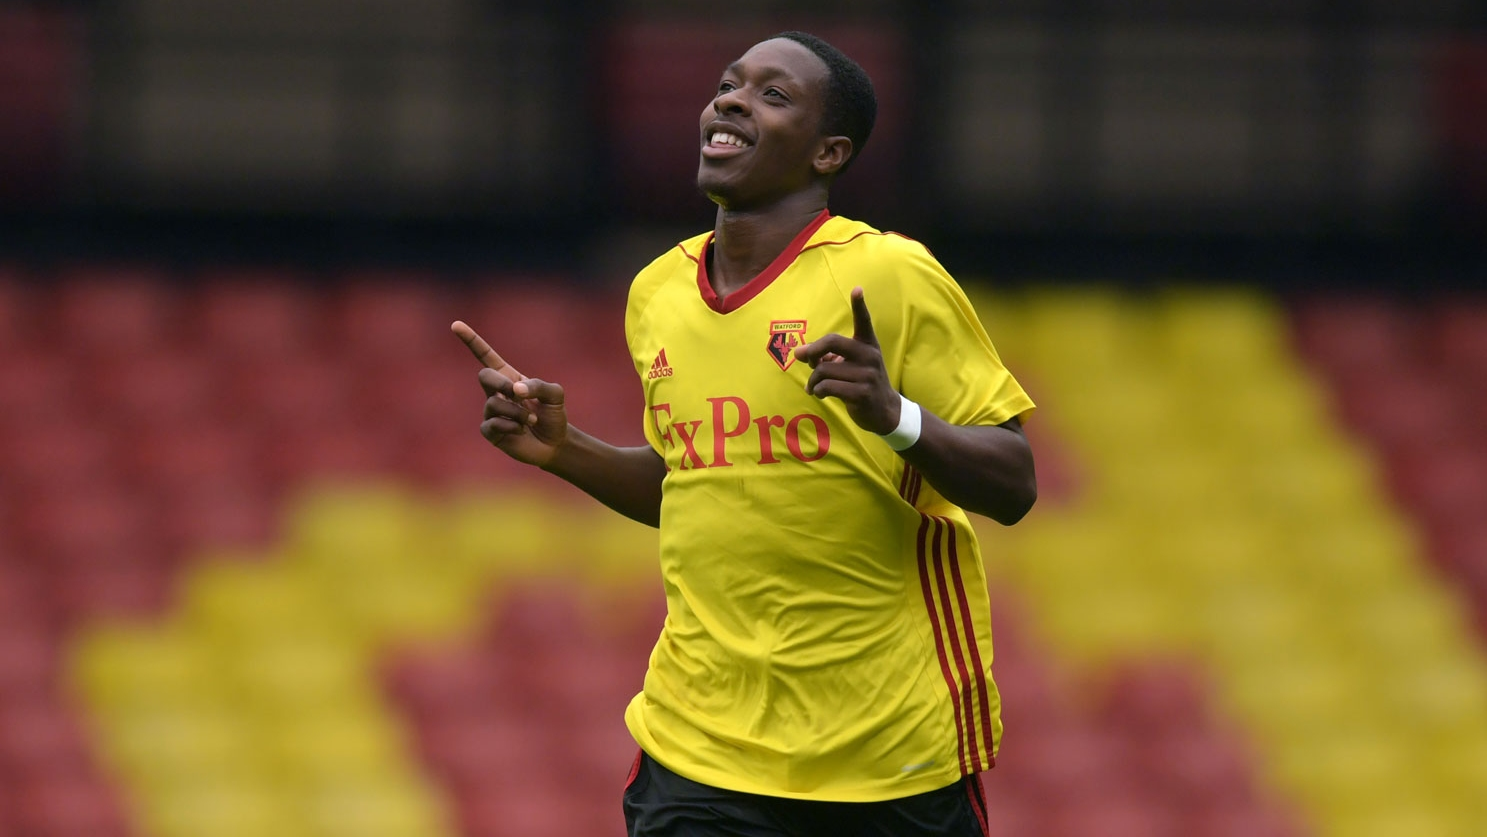 Watford U23 assistant coach Mullins hails two-goal hero Michael Kwaku Folivi after Colchester United win